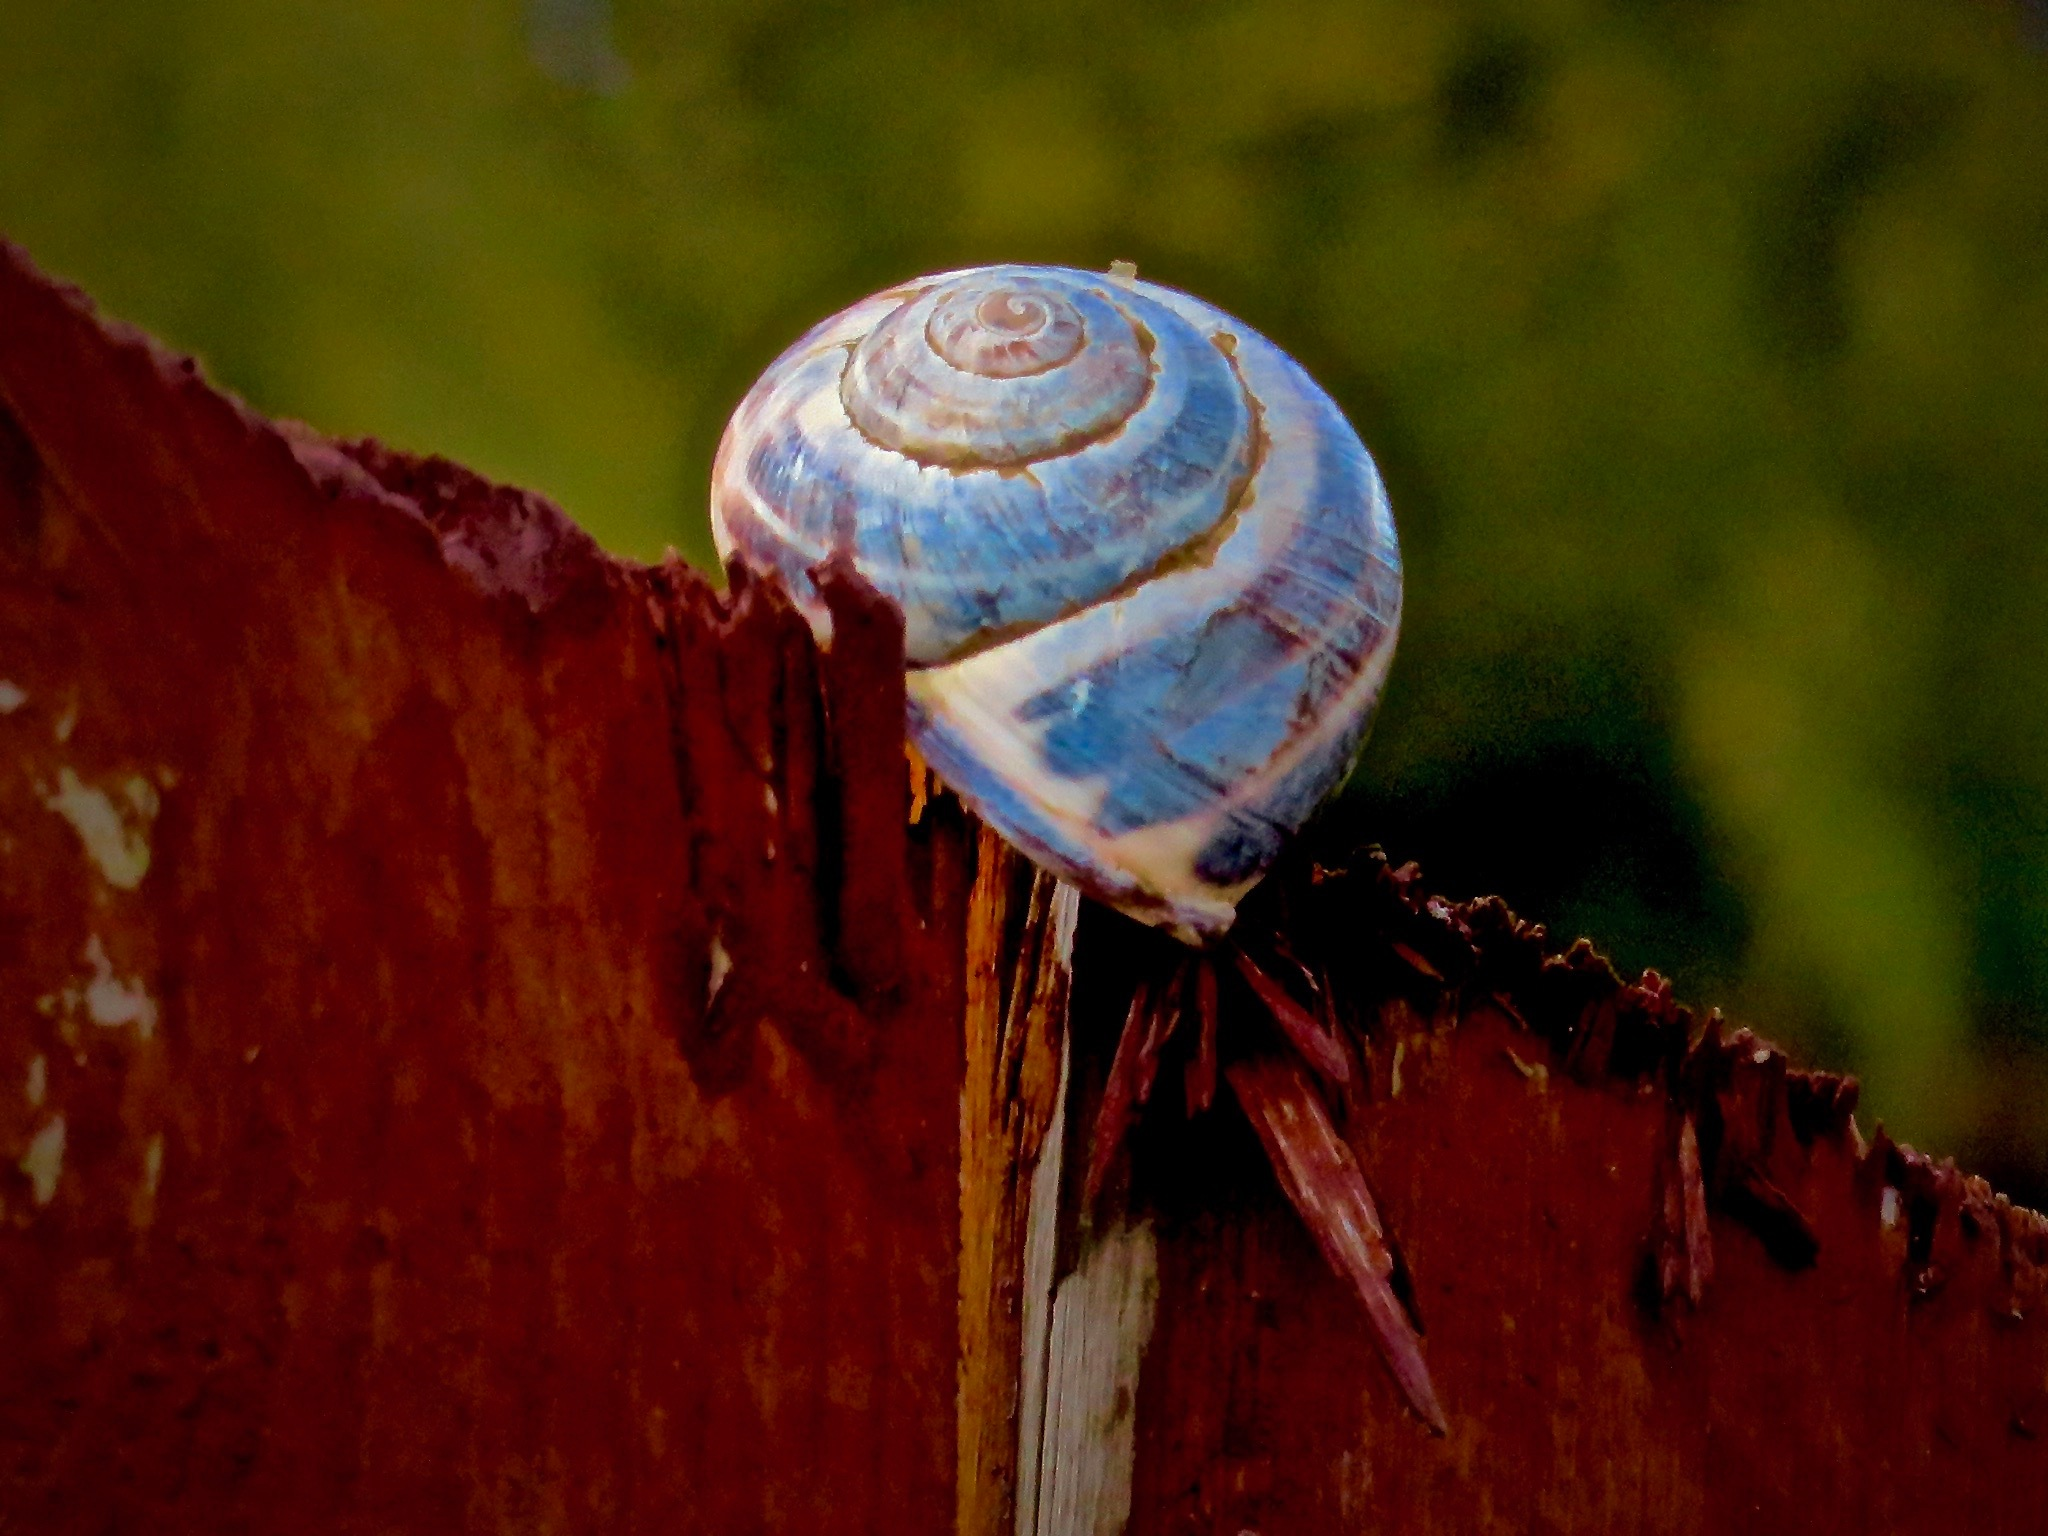 sometimes ya find things in the strangest places after a big huge windstorm !! by David Devion